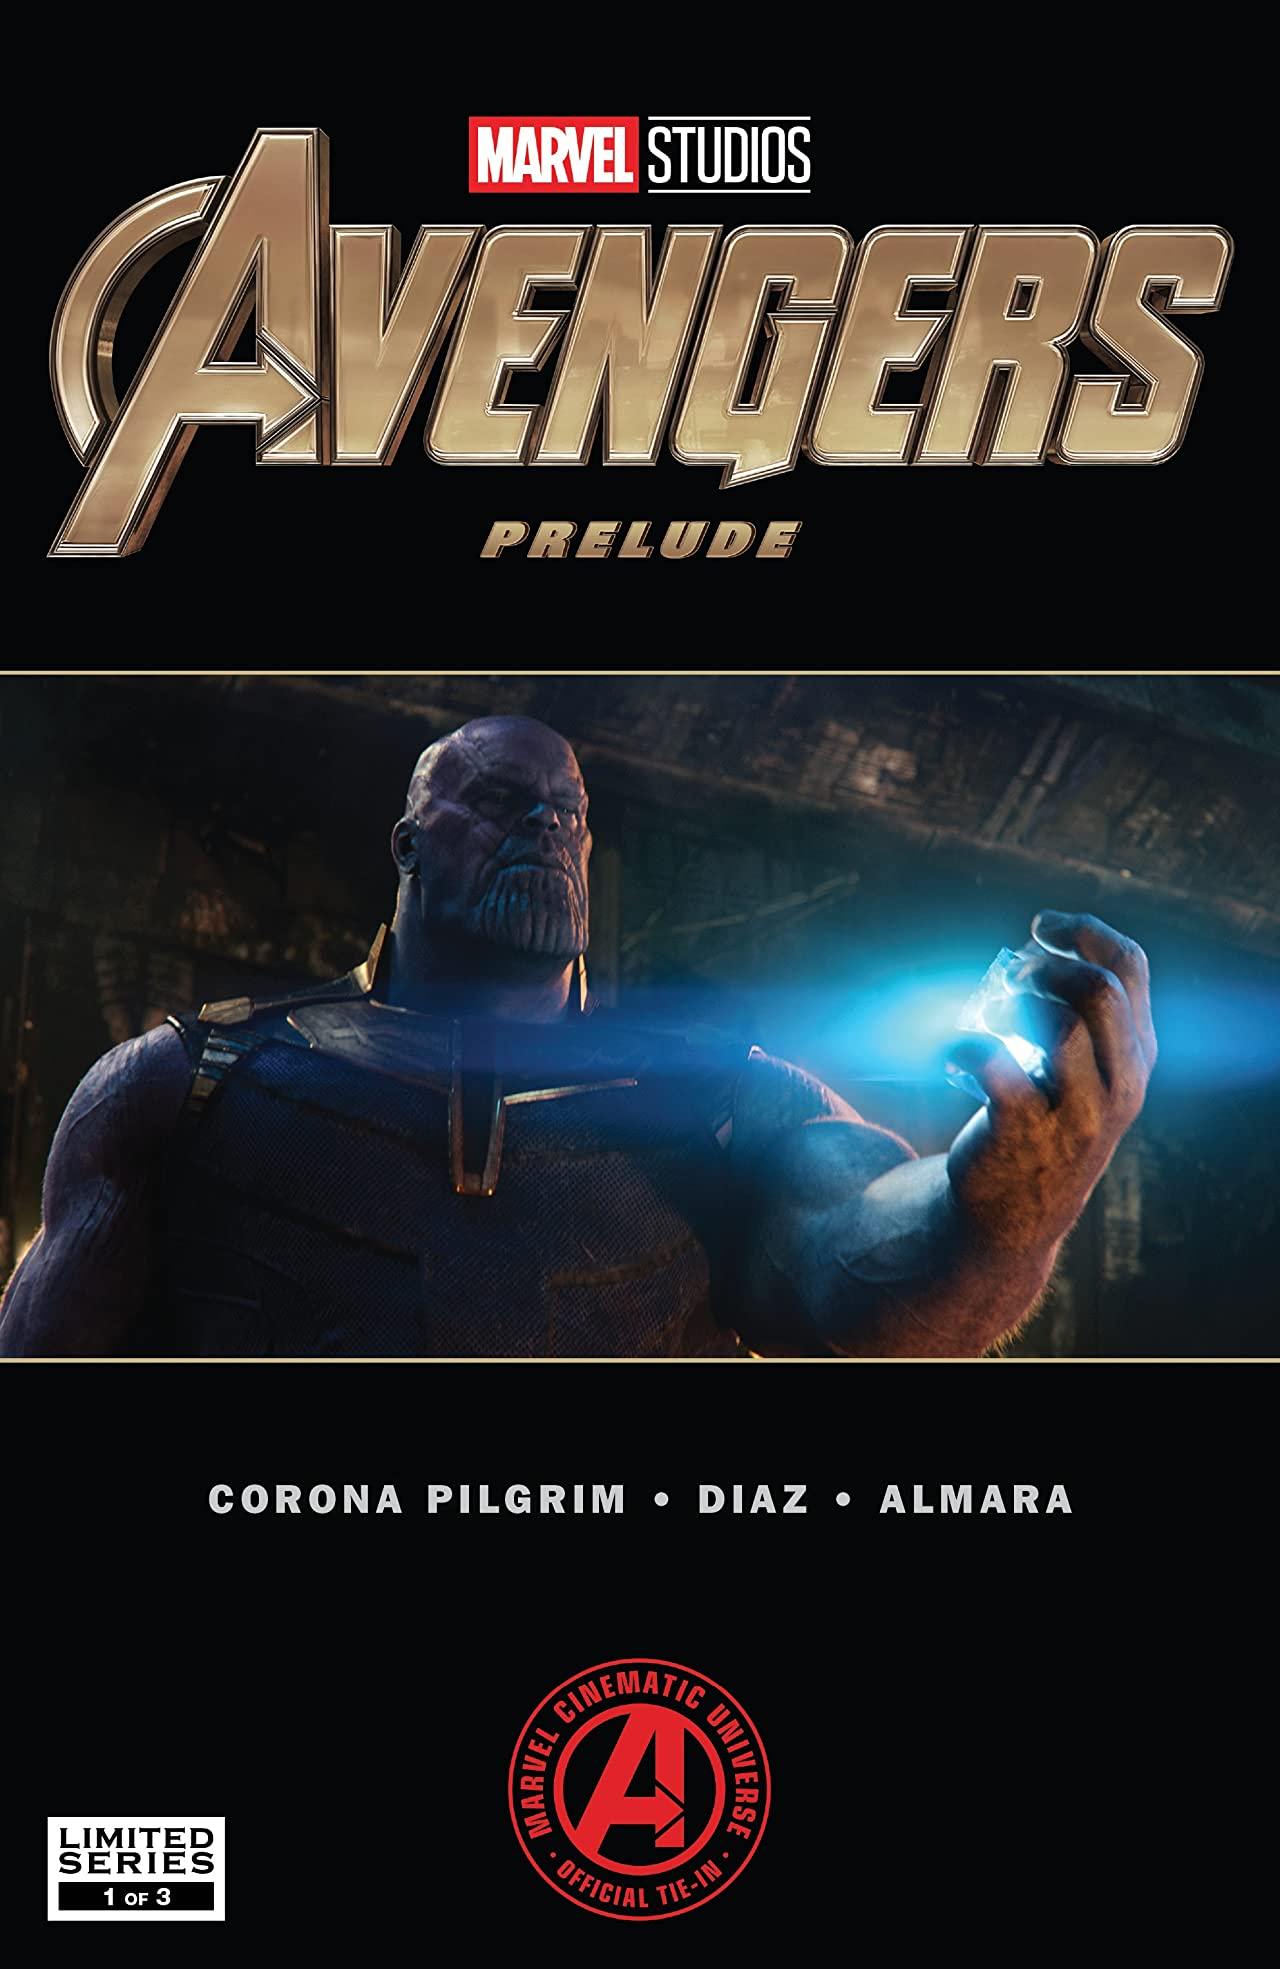 Marvel's Avengers: Endgame Prelude (2018-) #1 (of 3)